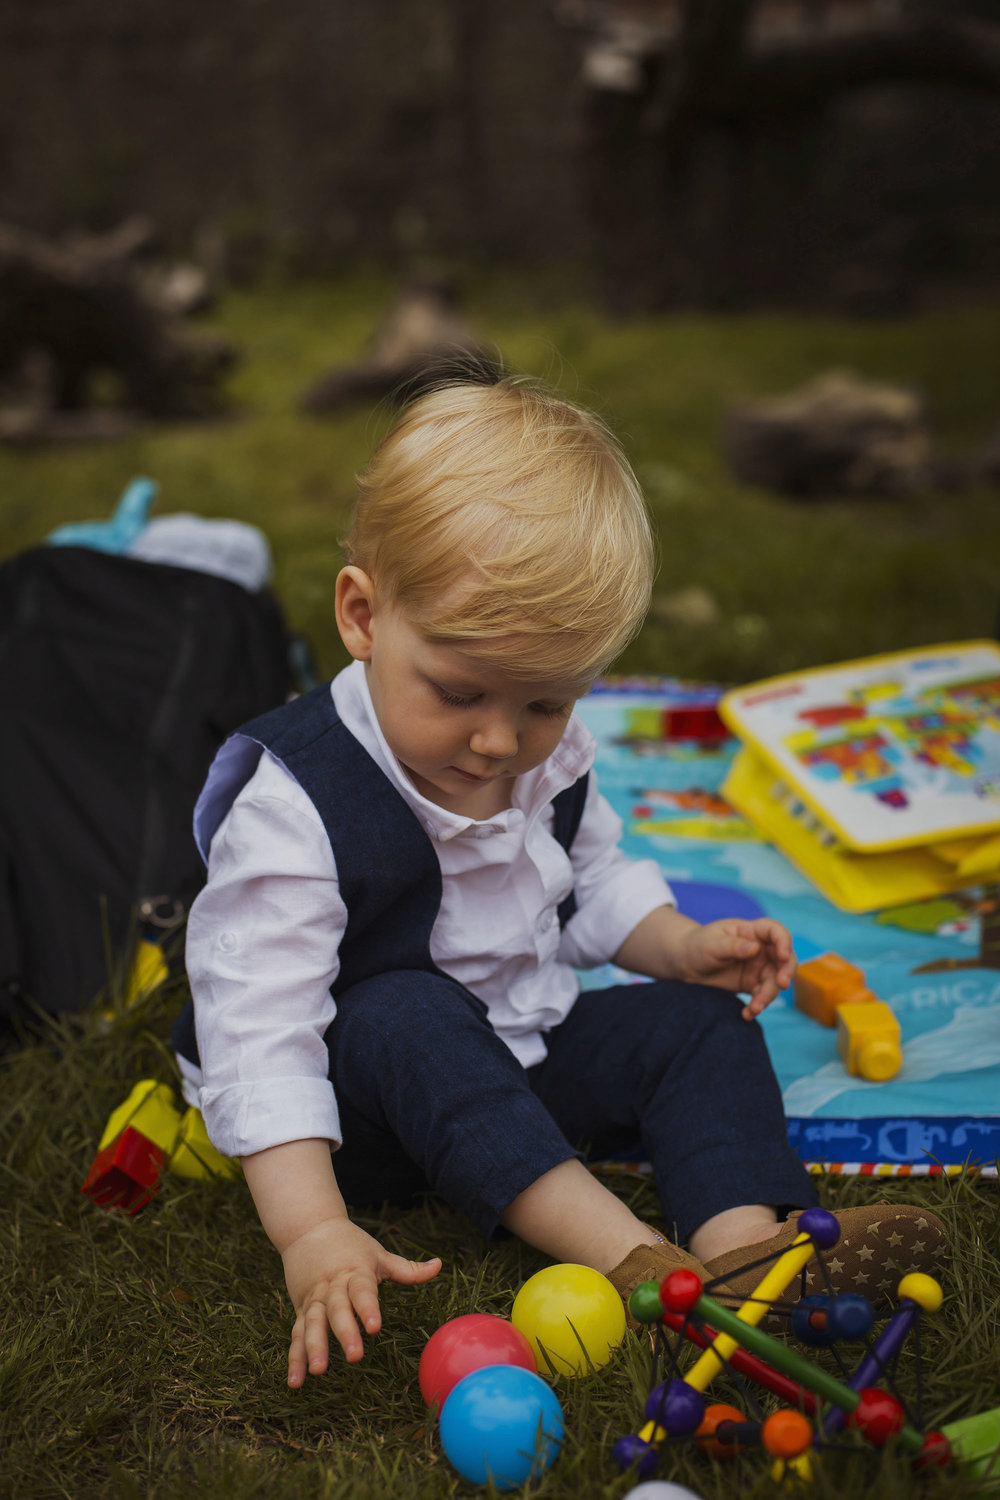 bride and groom's son playing with toys at wedding at usk castle